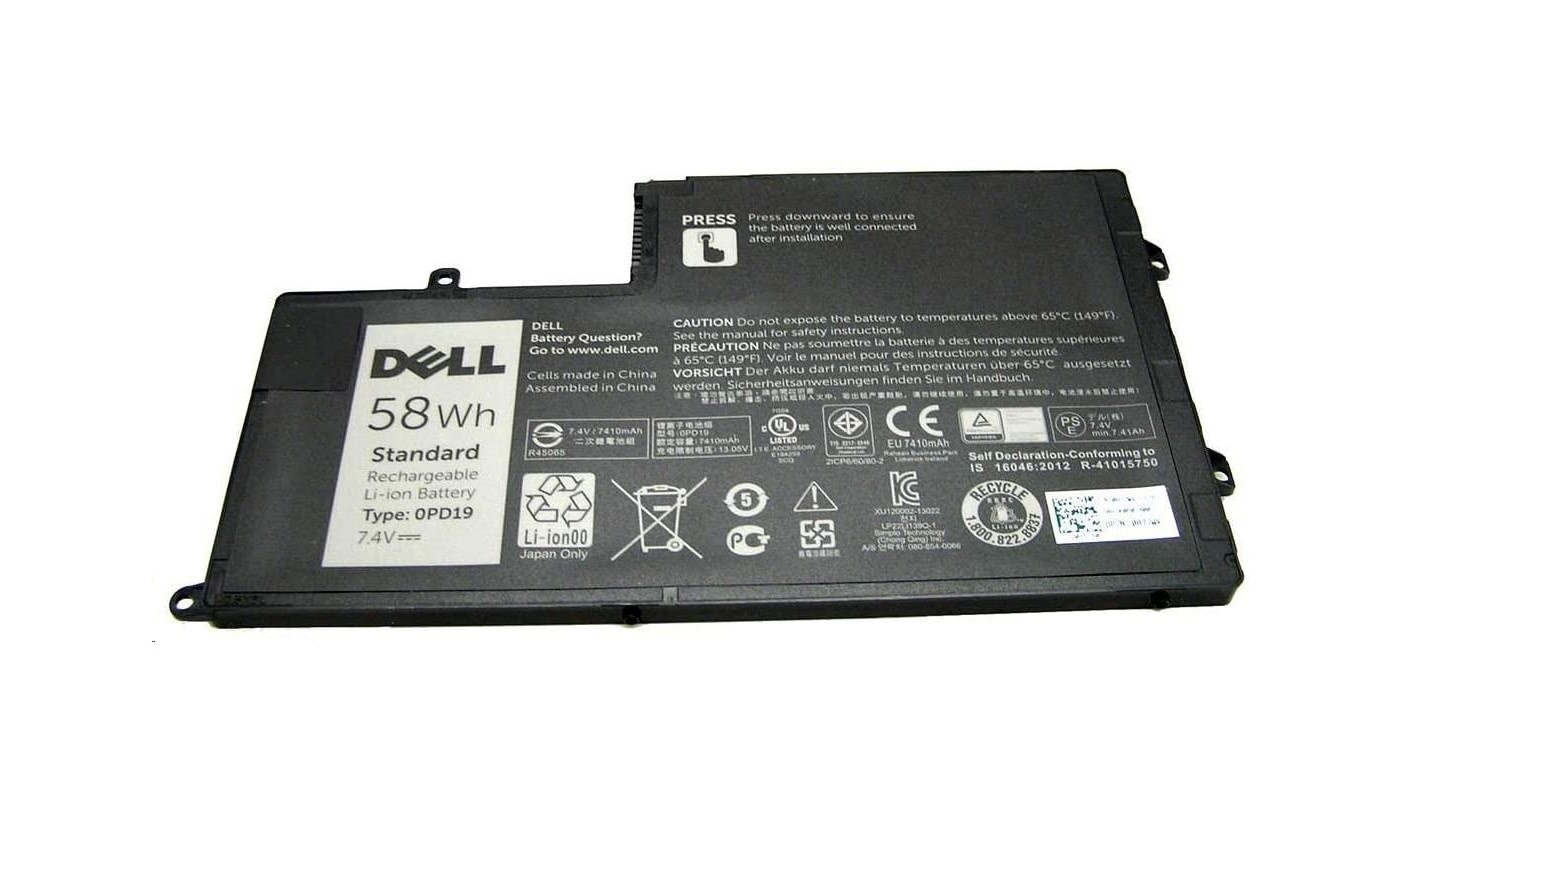 Genuine Dell 58 Wh7.4 V 4-Cell Primary Li-Ion Battery 451-BBLX Latitude 3450 3550 Inspiron 15 5000 Series